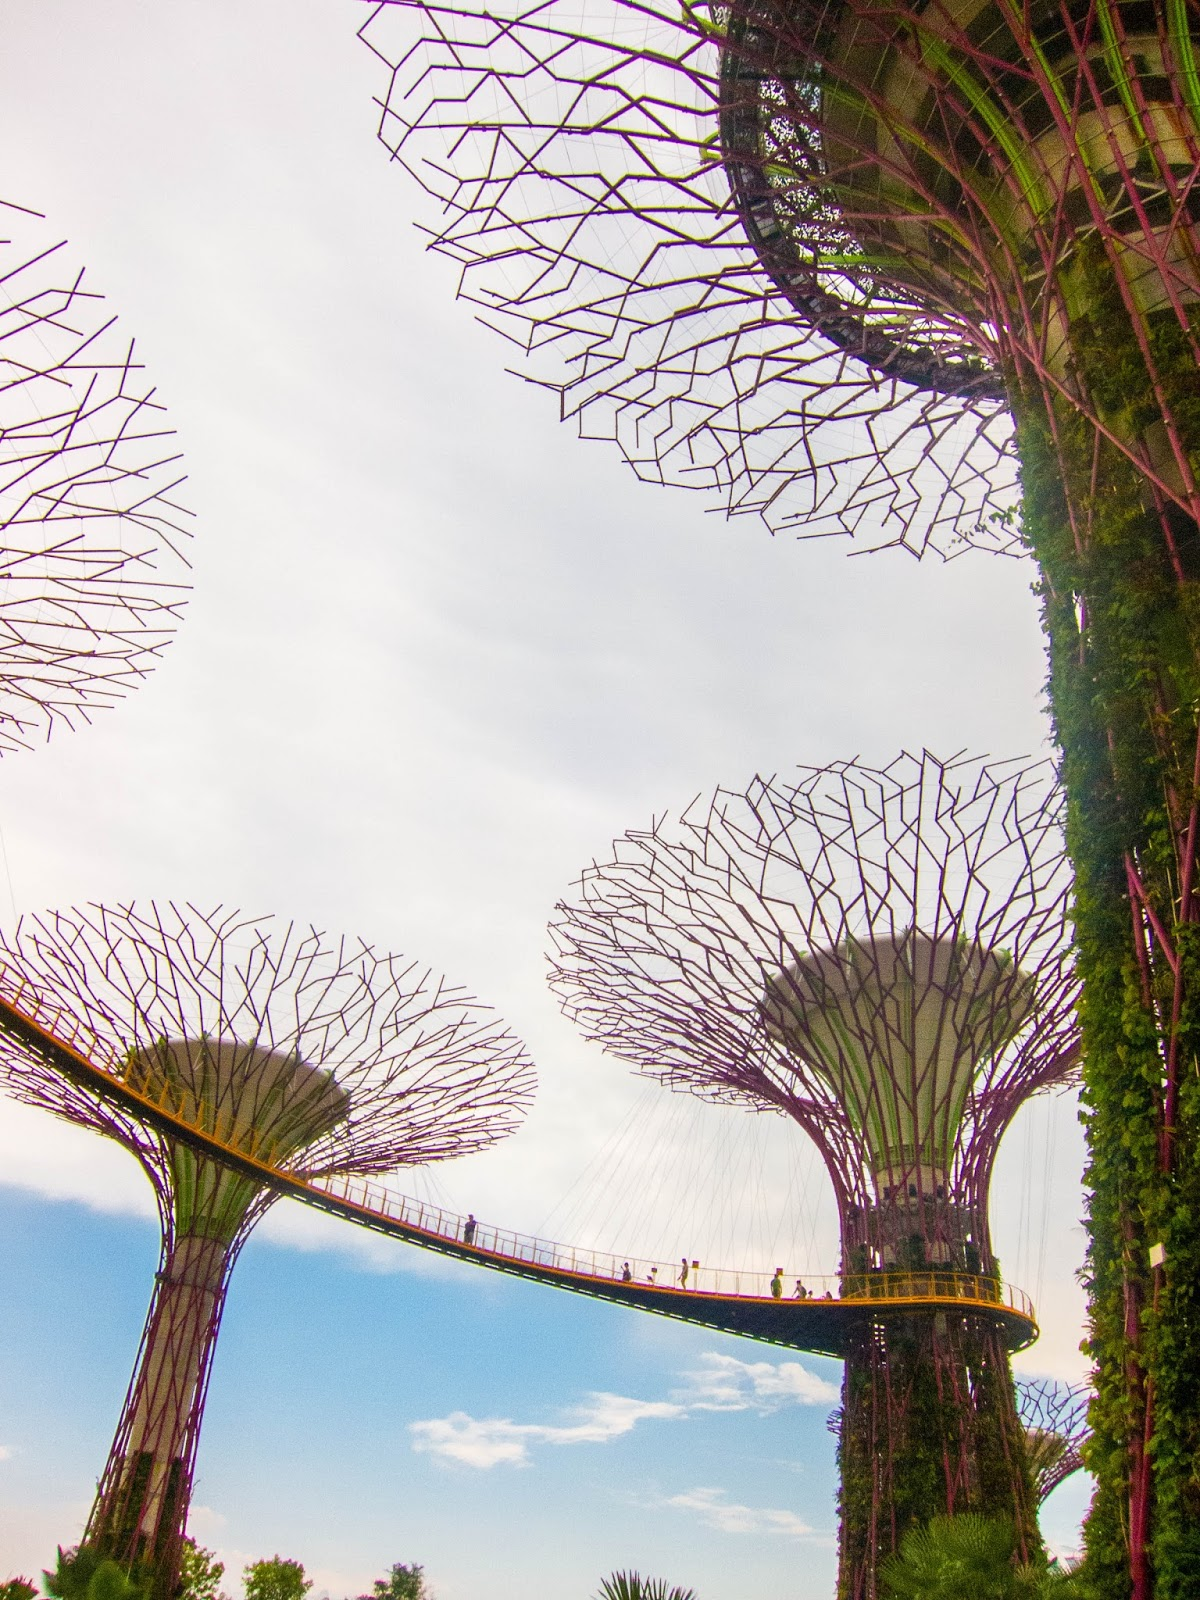 OCBC Skyway at Supertree Grove, Gardens by the Bay in Singapore | Svelte Salivations - Travel